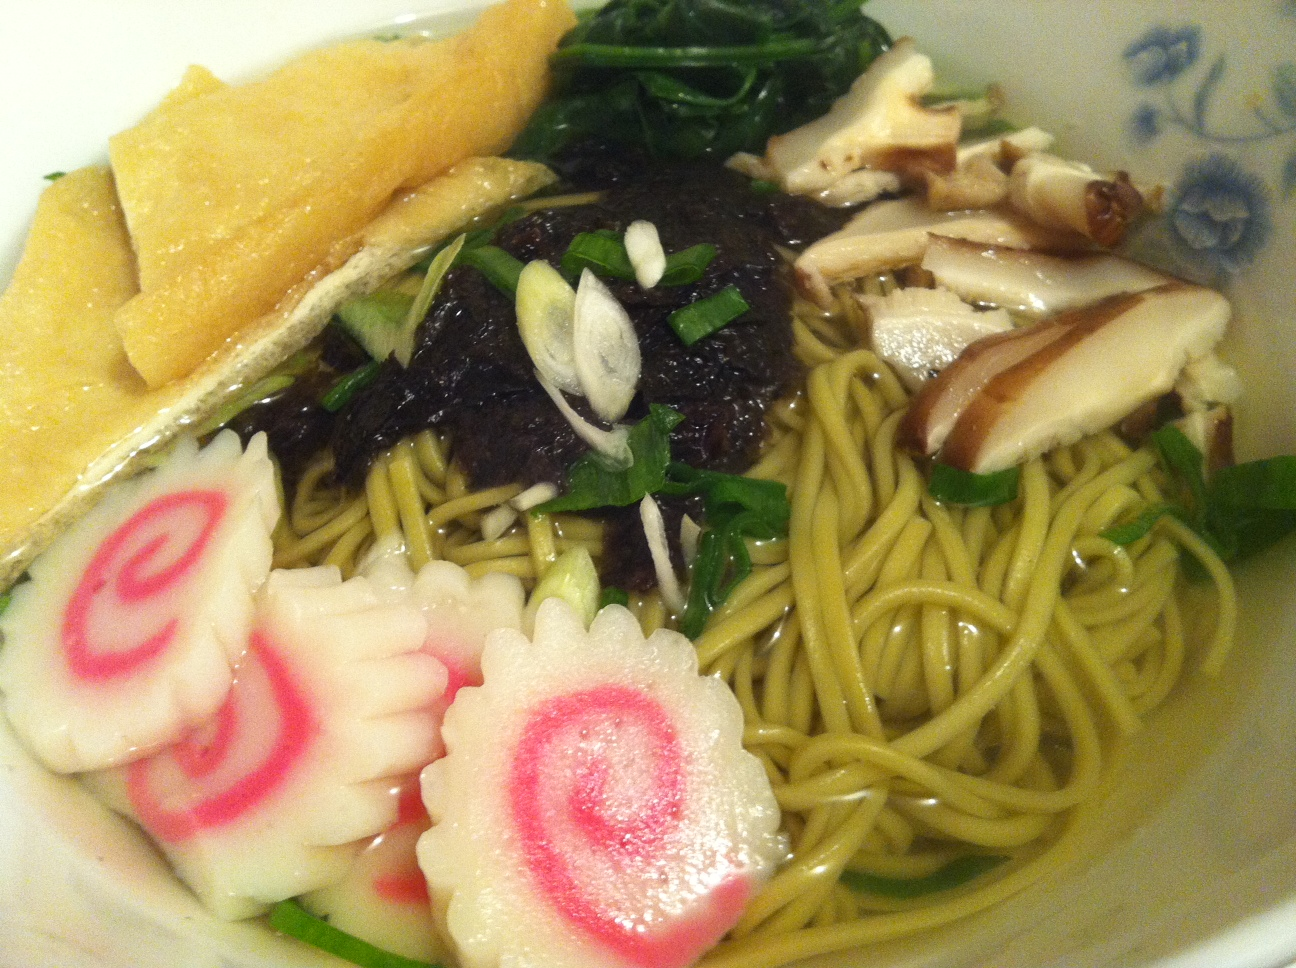 ... soba noodles in dashi soup with green onions, nori and baby spinach